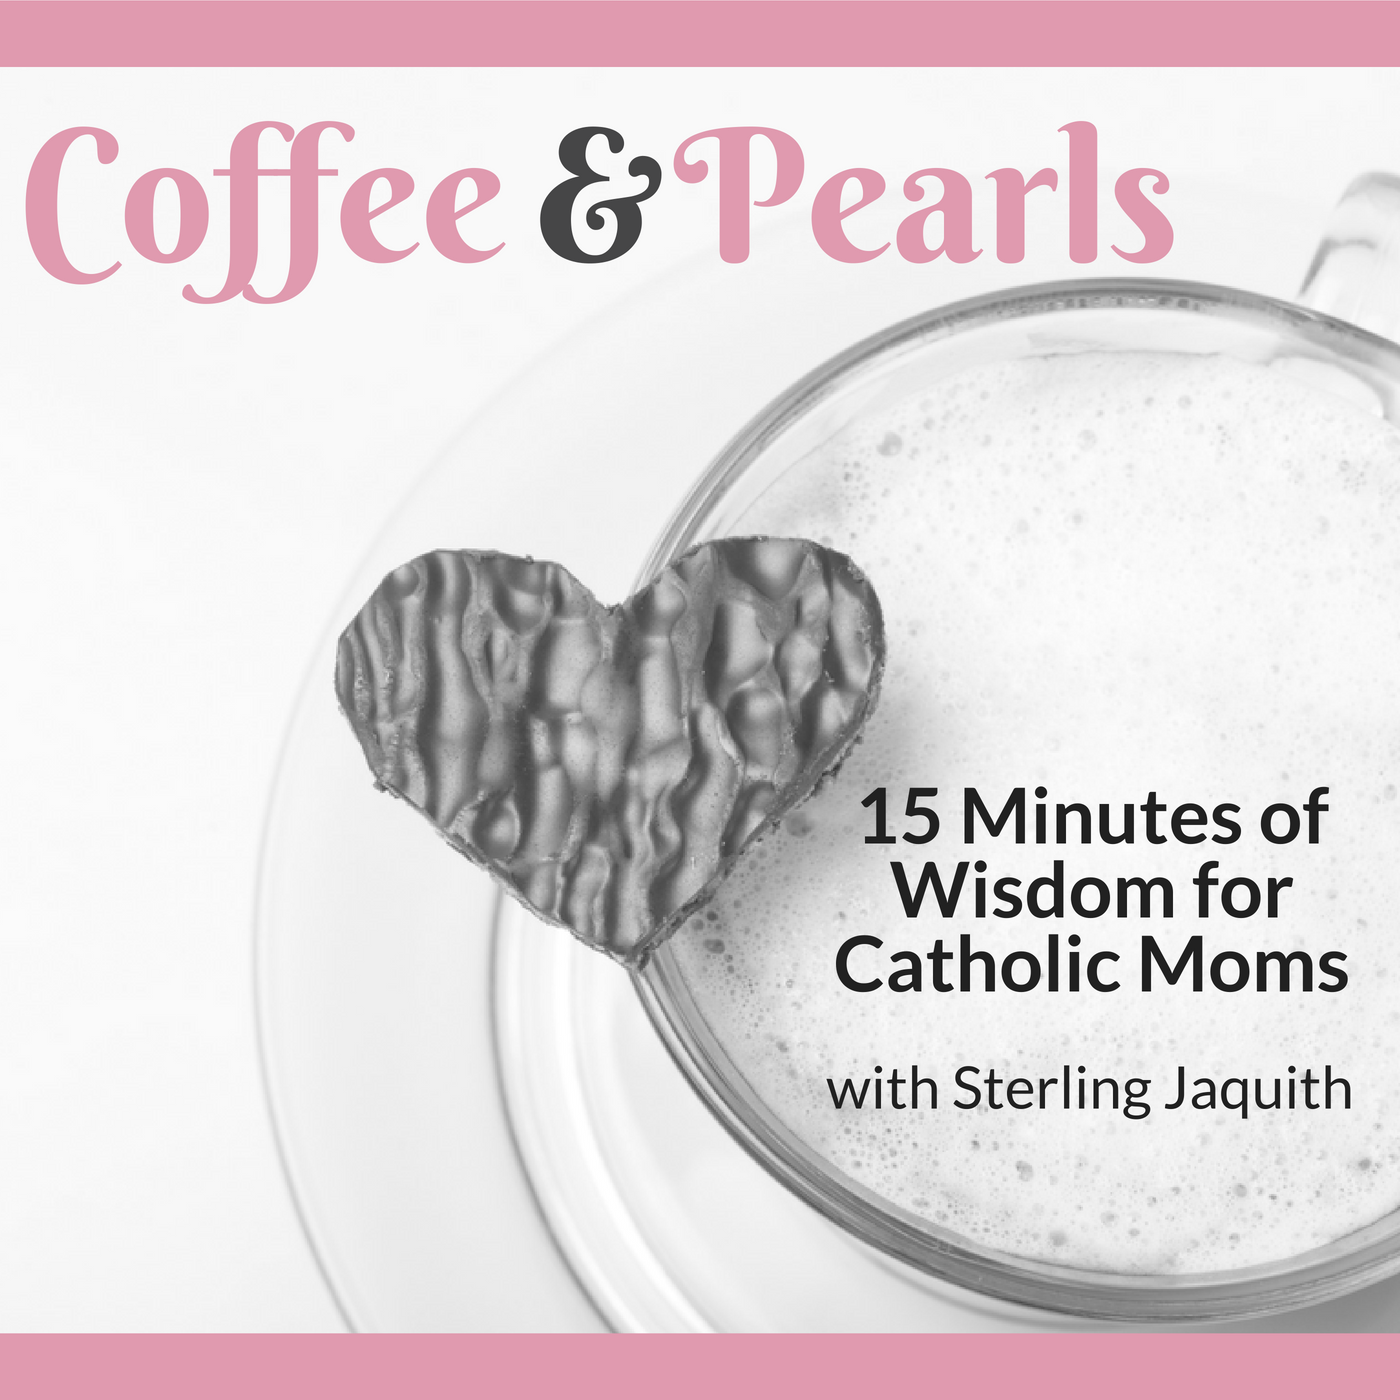 Coffee & Pearls: Wisdom for Catholic Moms